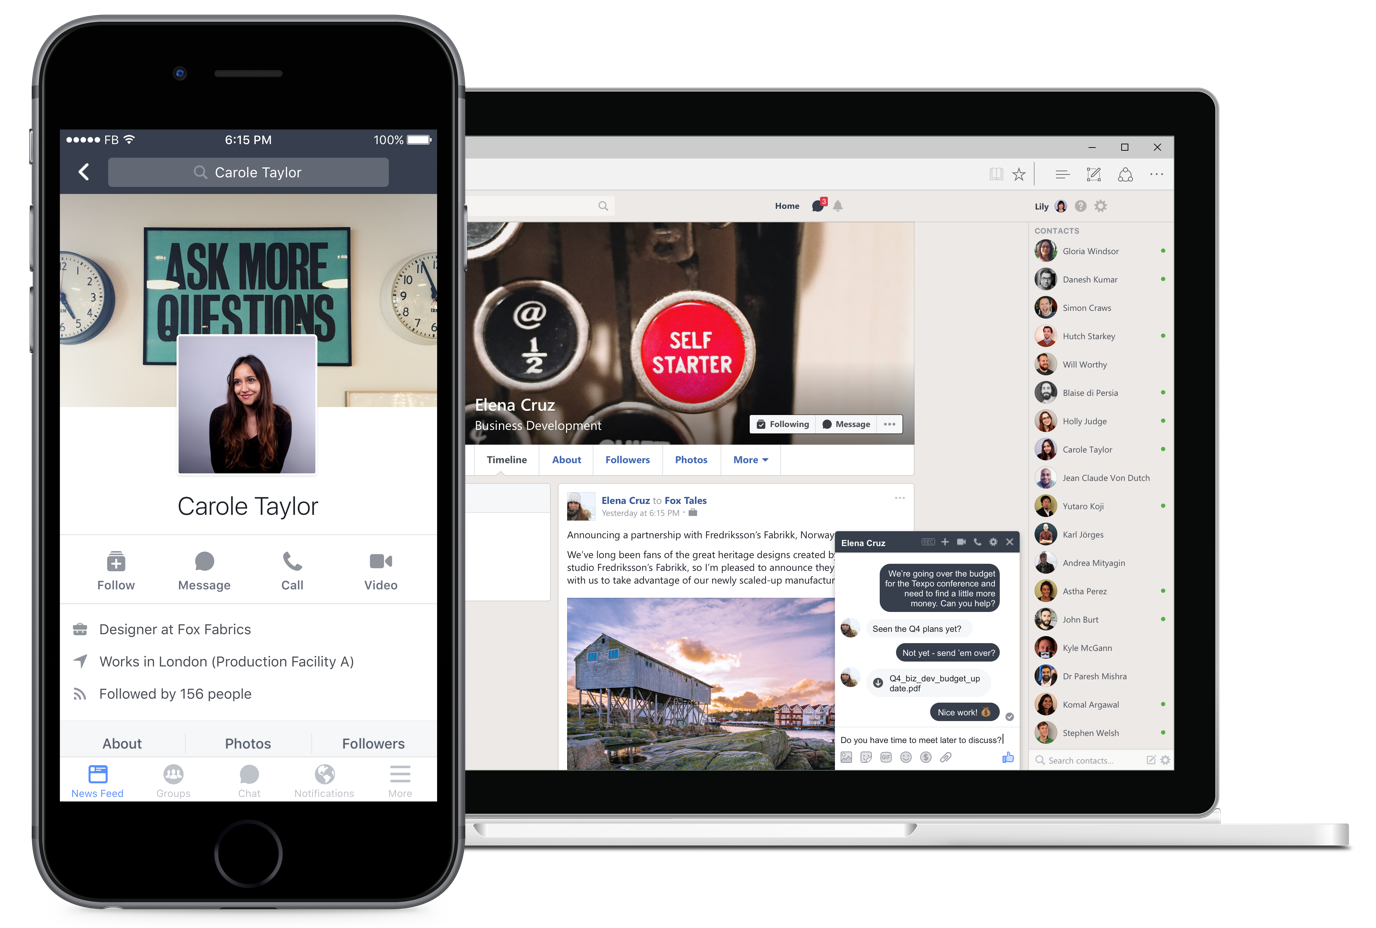 Facebook Workplace 1.0 for iOS profile teaser 001